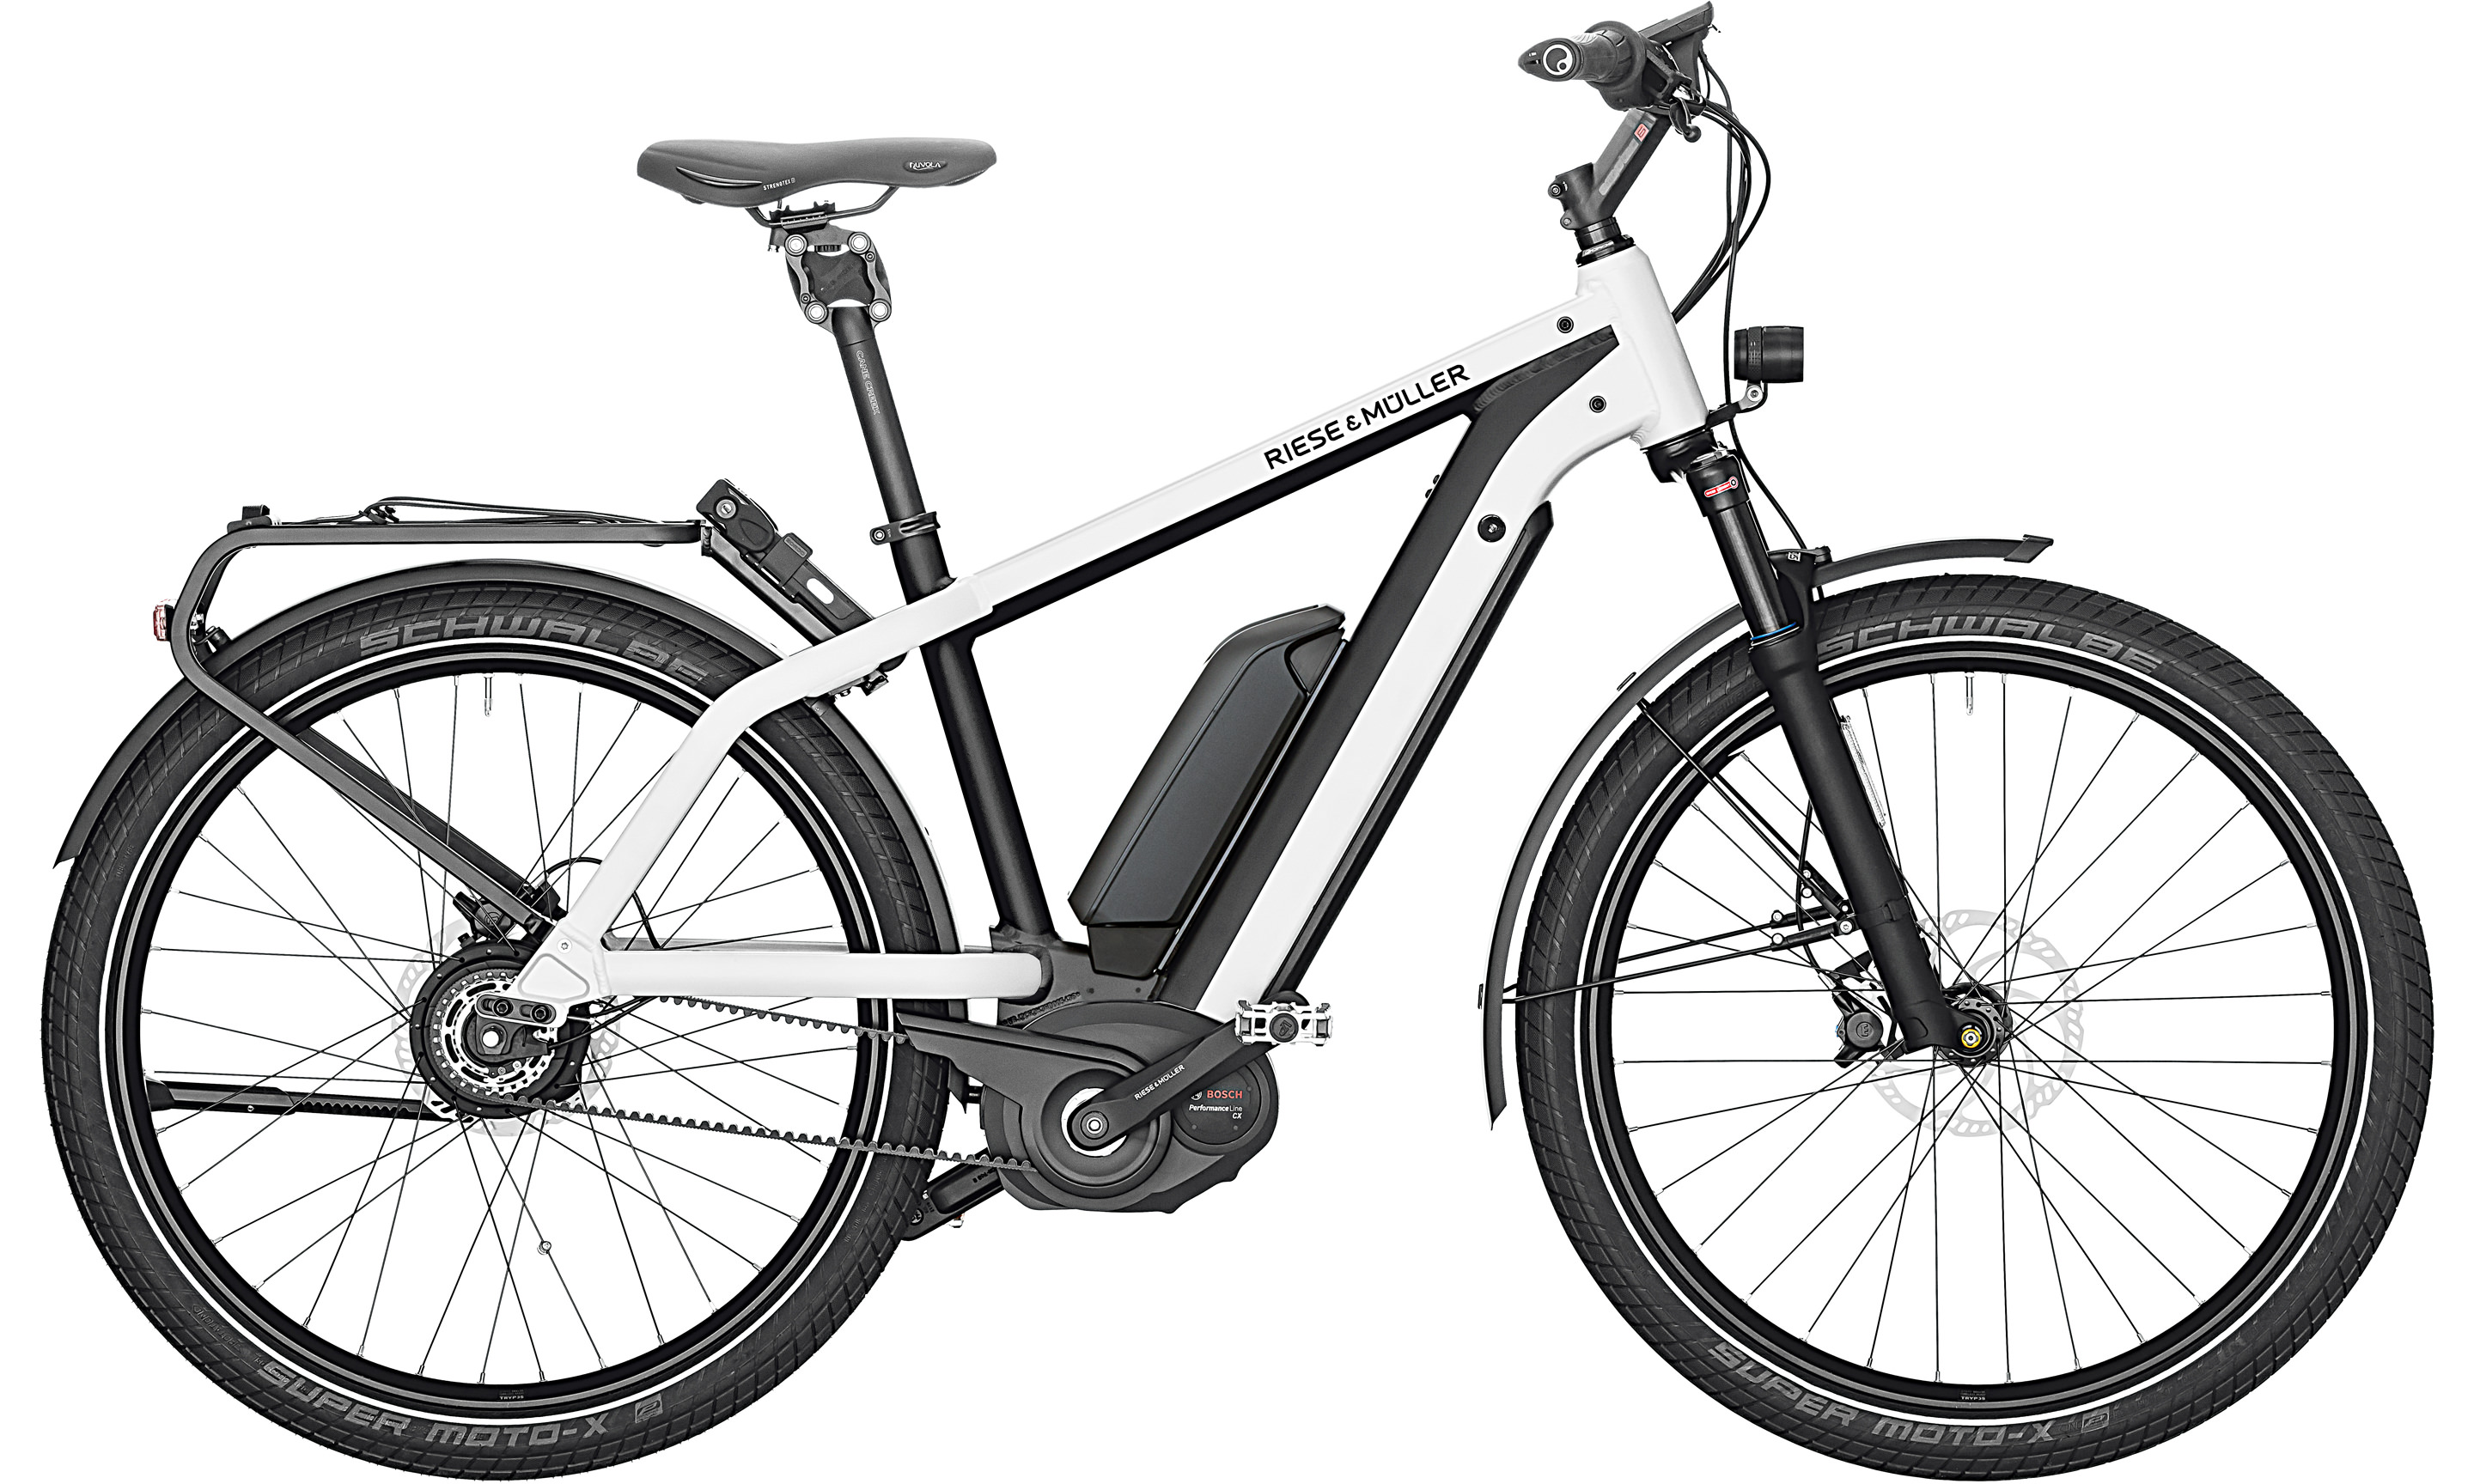 Charger Mixte GH vario | Bouticycle